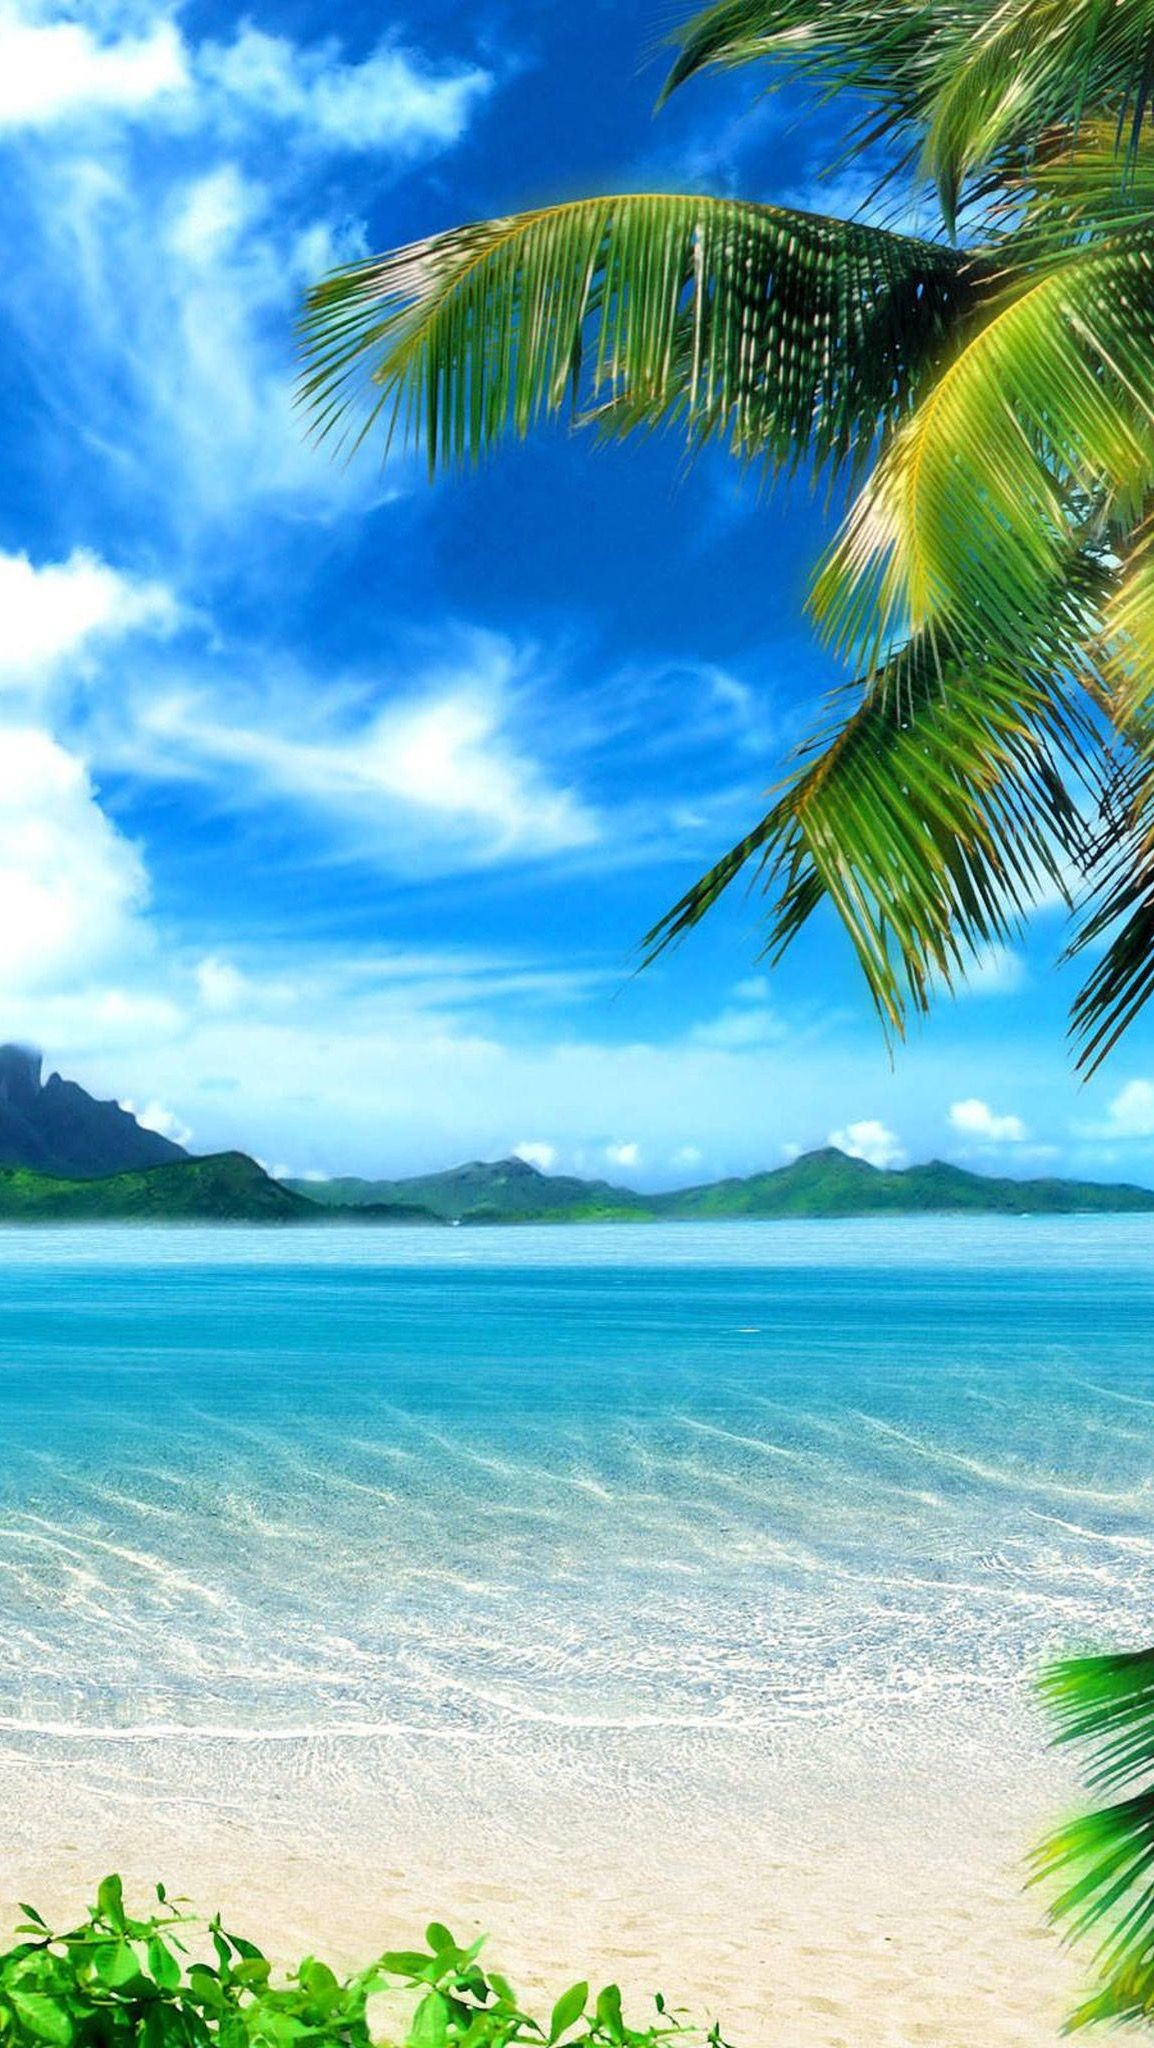 Caribbean beach wallpapers 72 background pictures - Caribbean iphone wallpaper ...